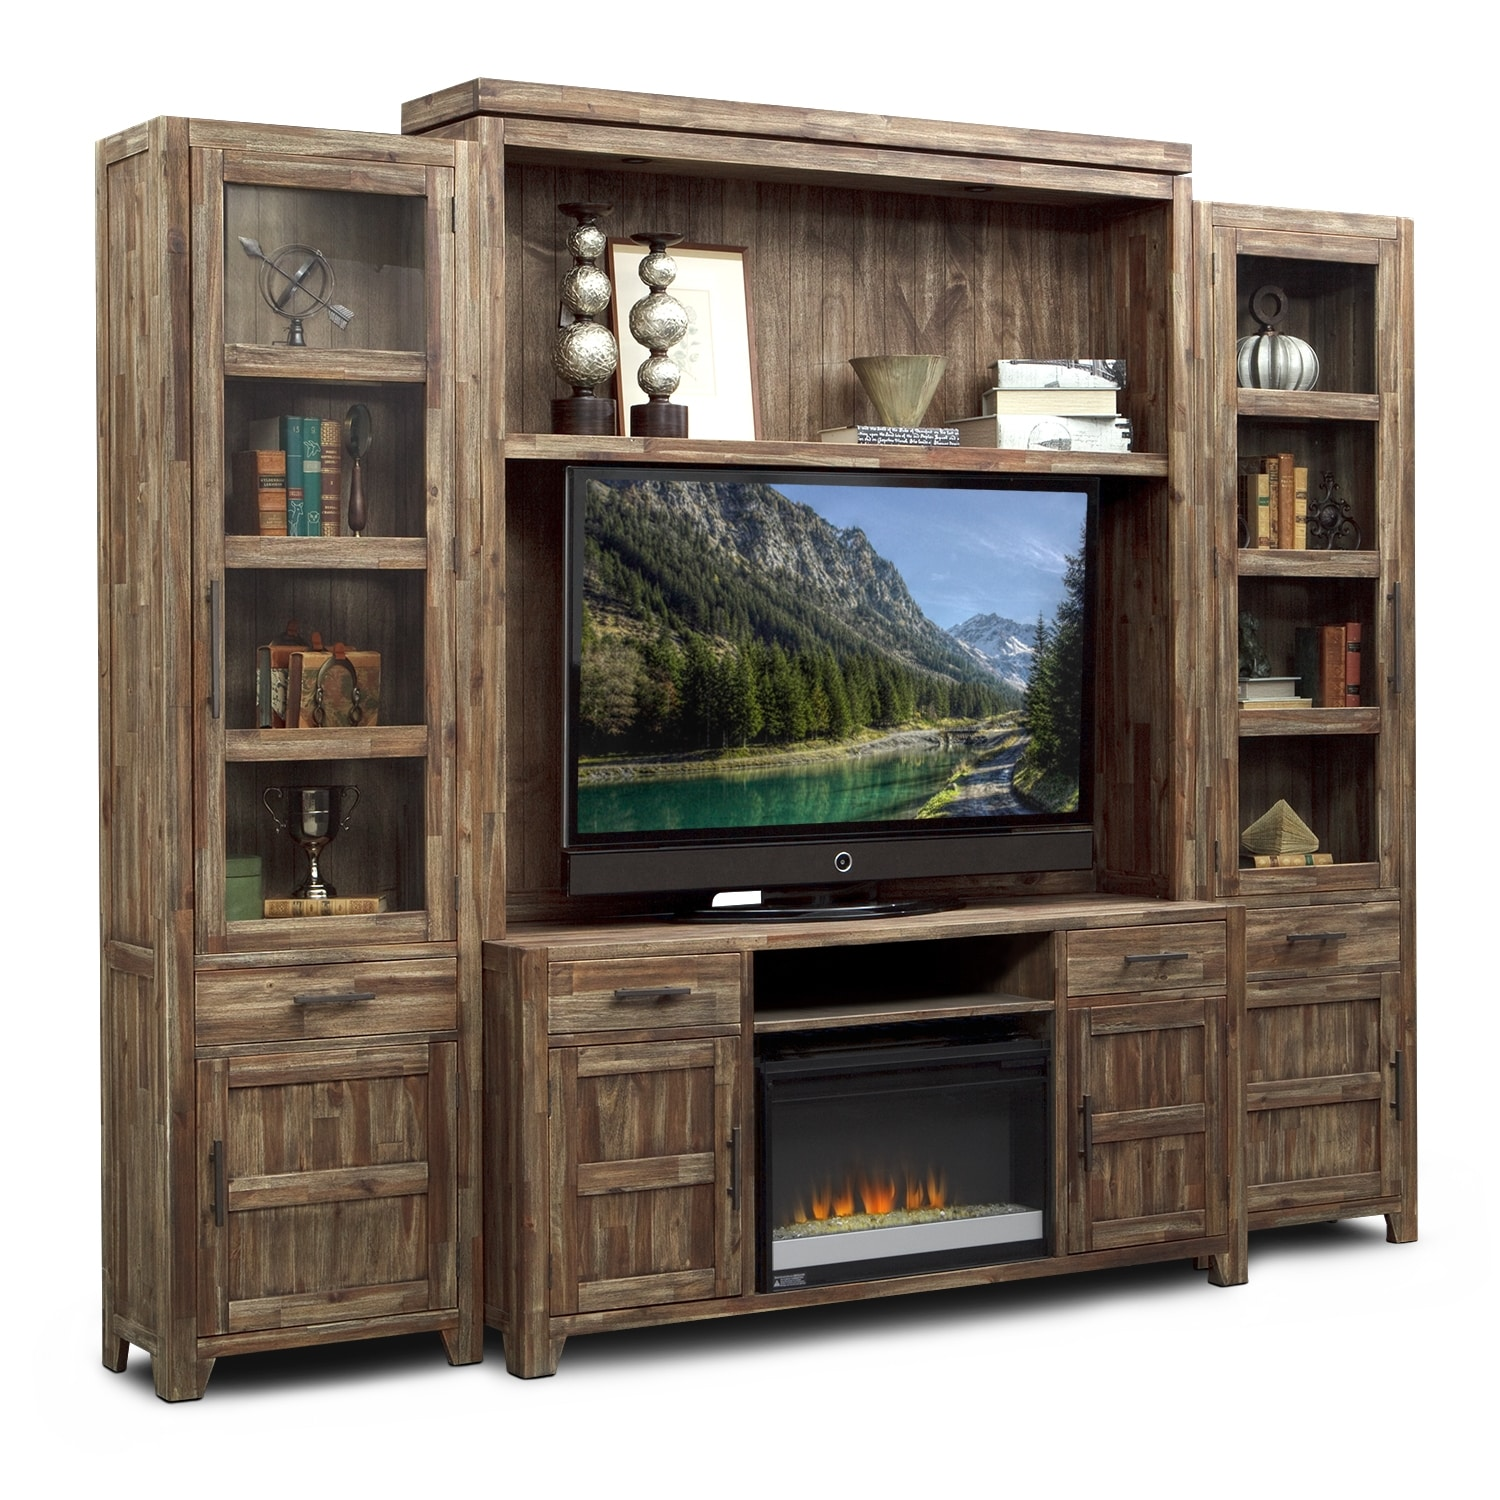 Brentwood 5 Pc. Entertainment Wall Unit with Contemporary Fireplace